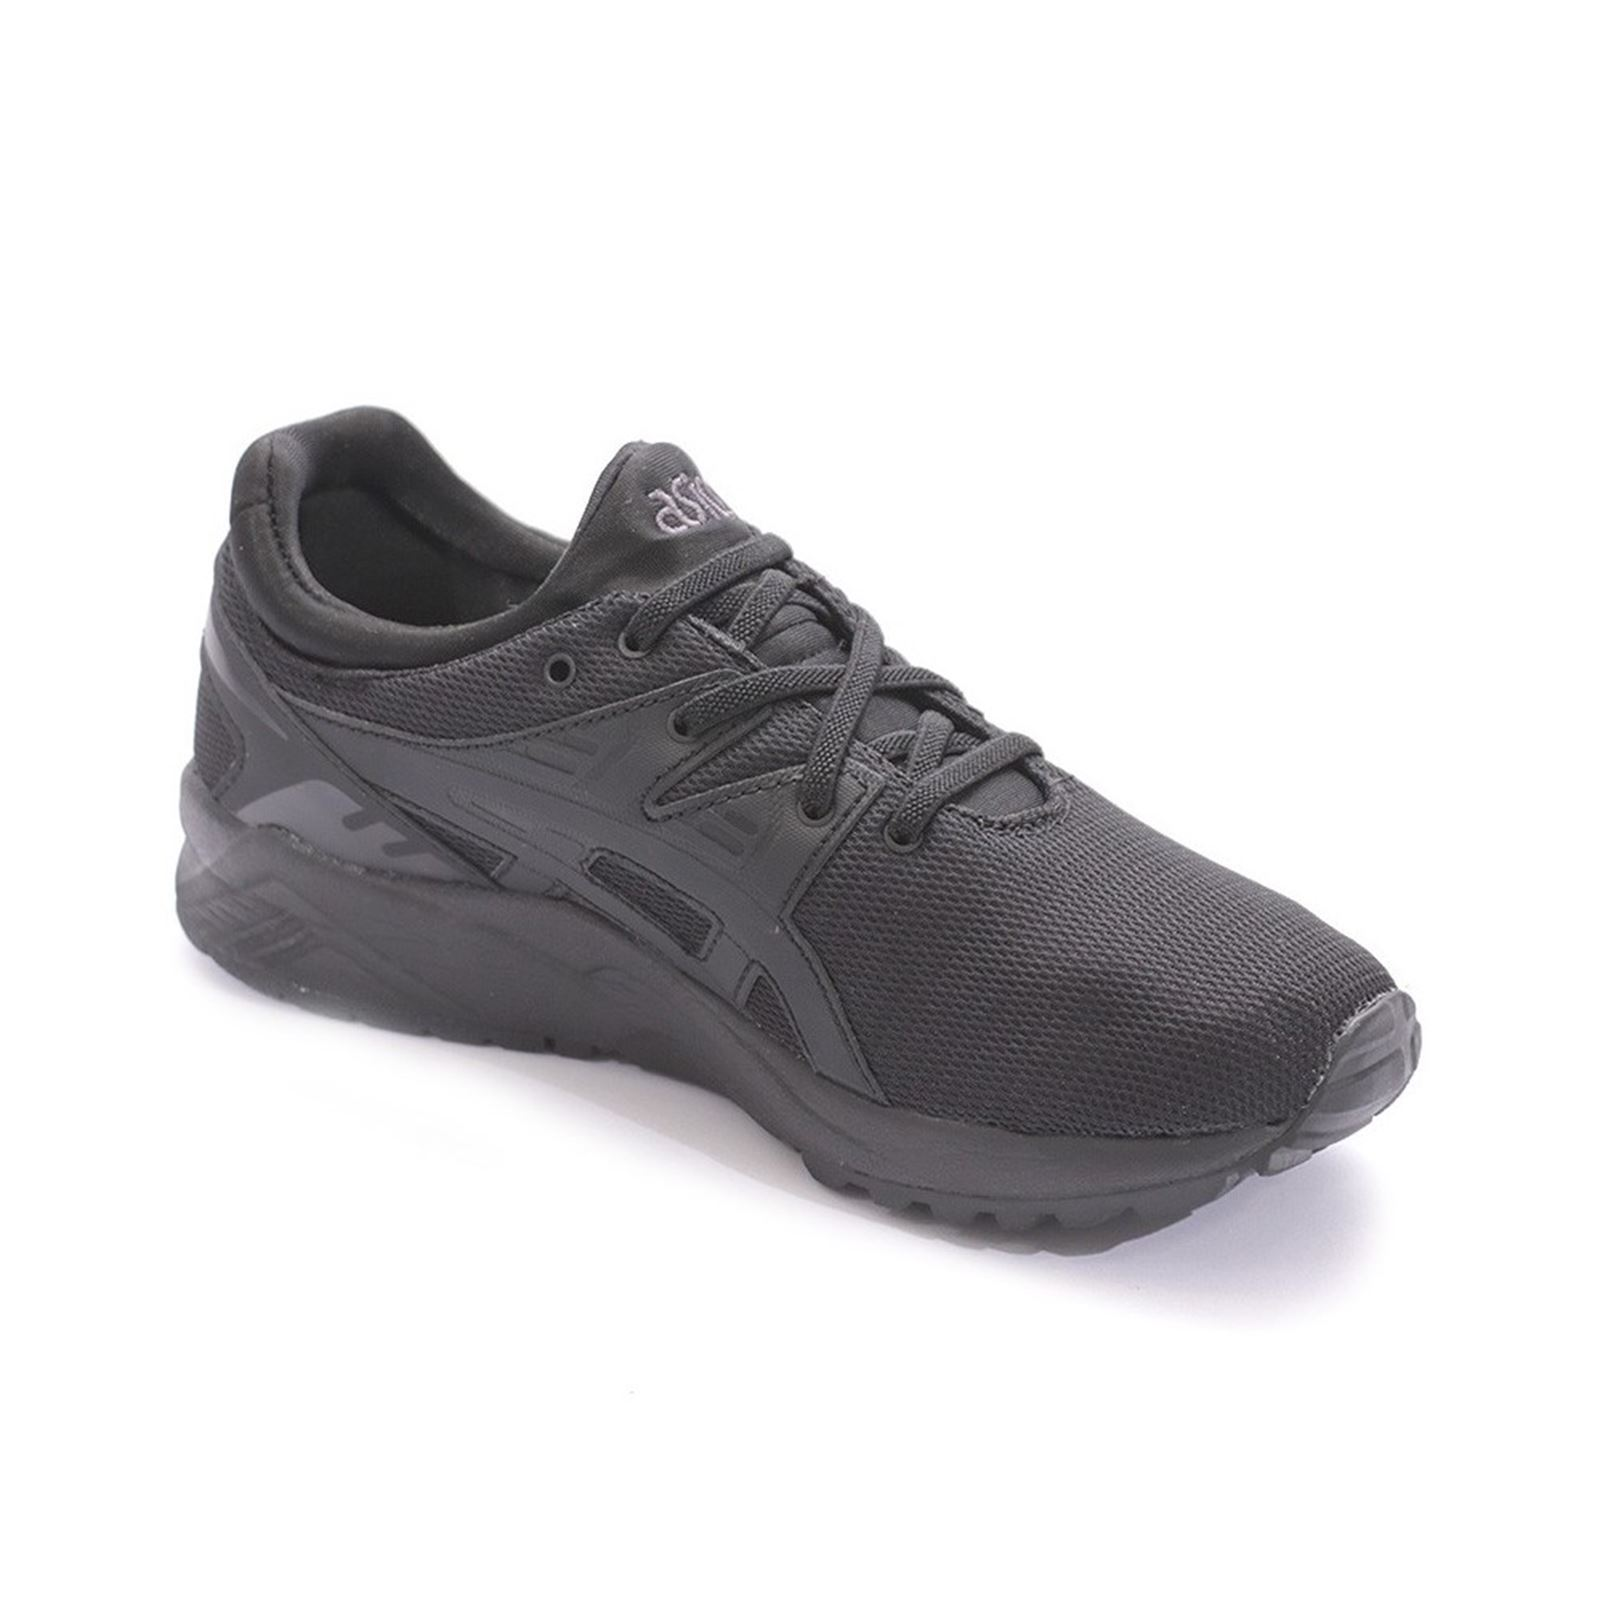 nouvelle collection 17638 88982 Gel kayano trainer evo - Tennis - noir